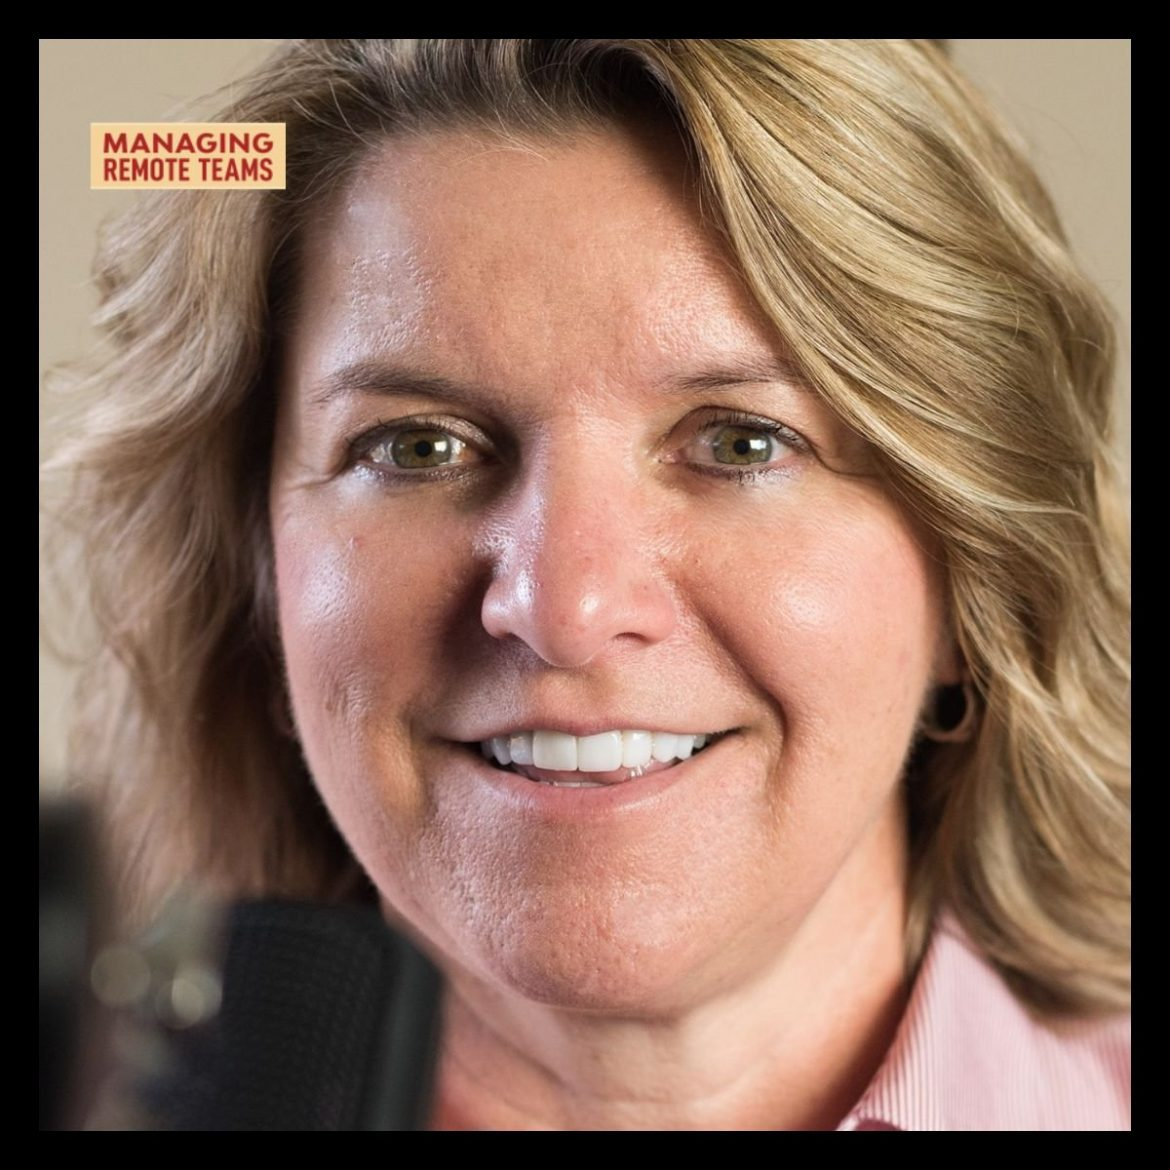 On axiology in project management with Traci Duez